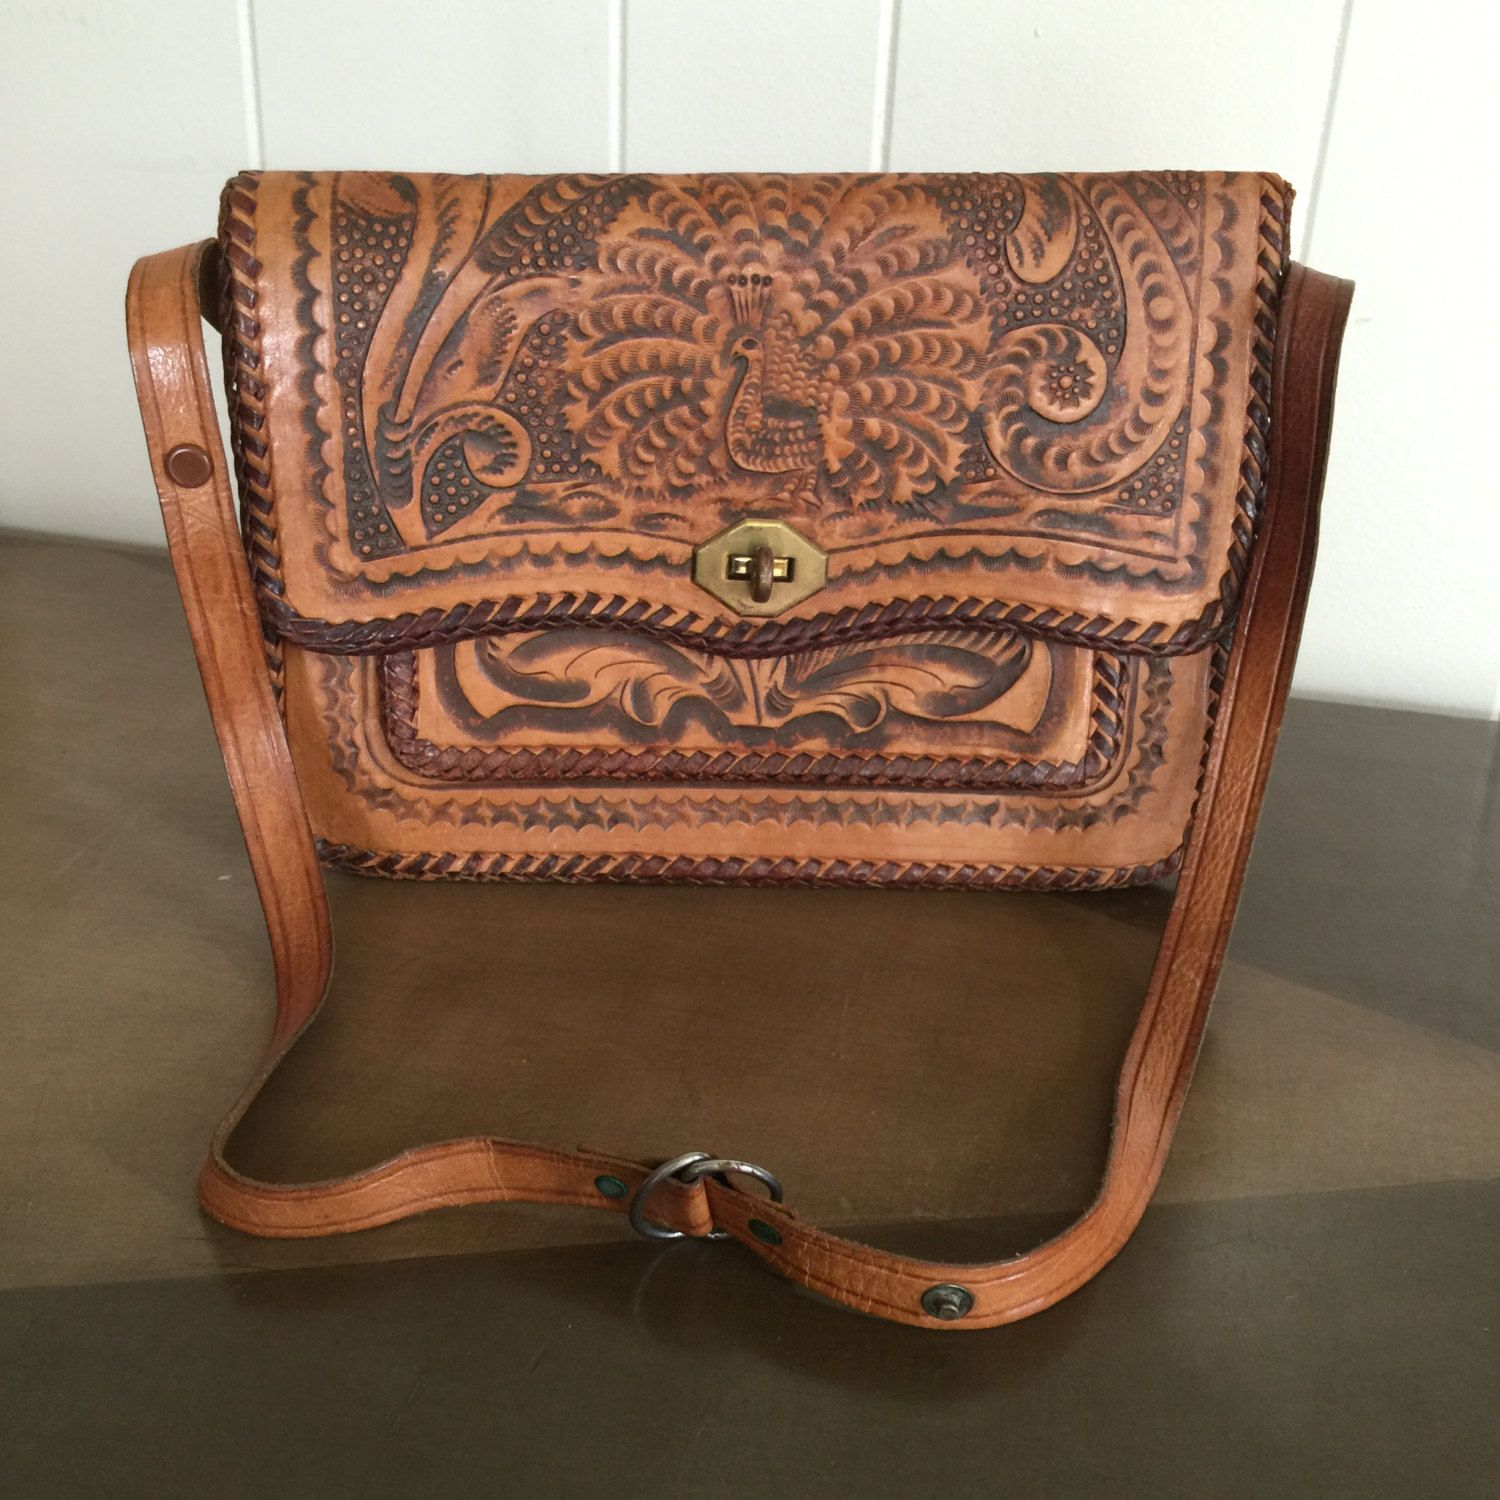 Vintage Tooled Leather Purse Handbag With Peacock Motif